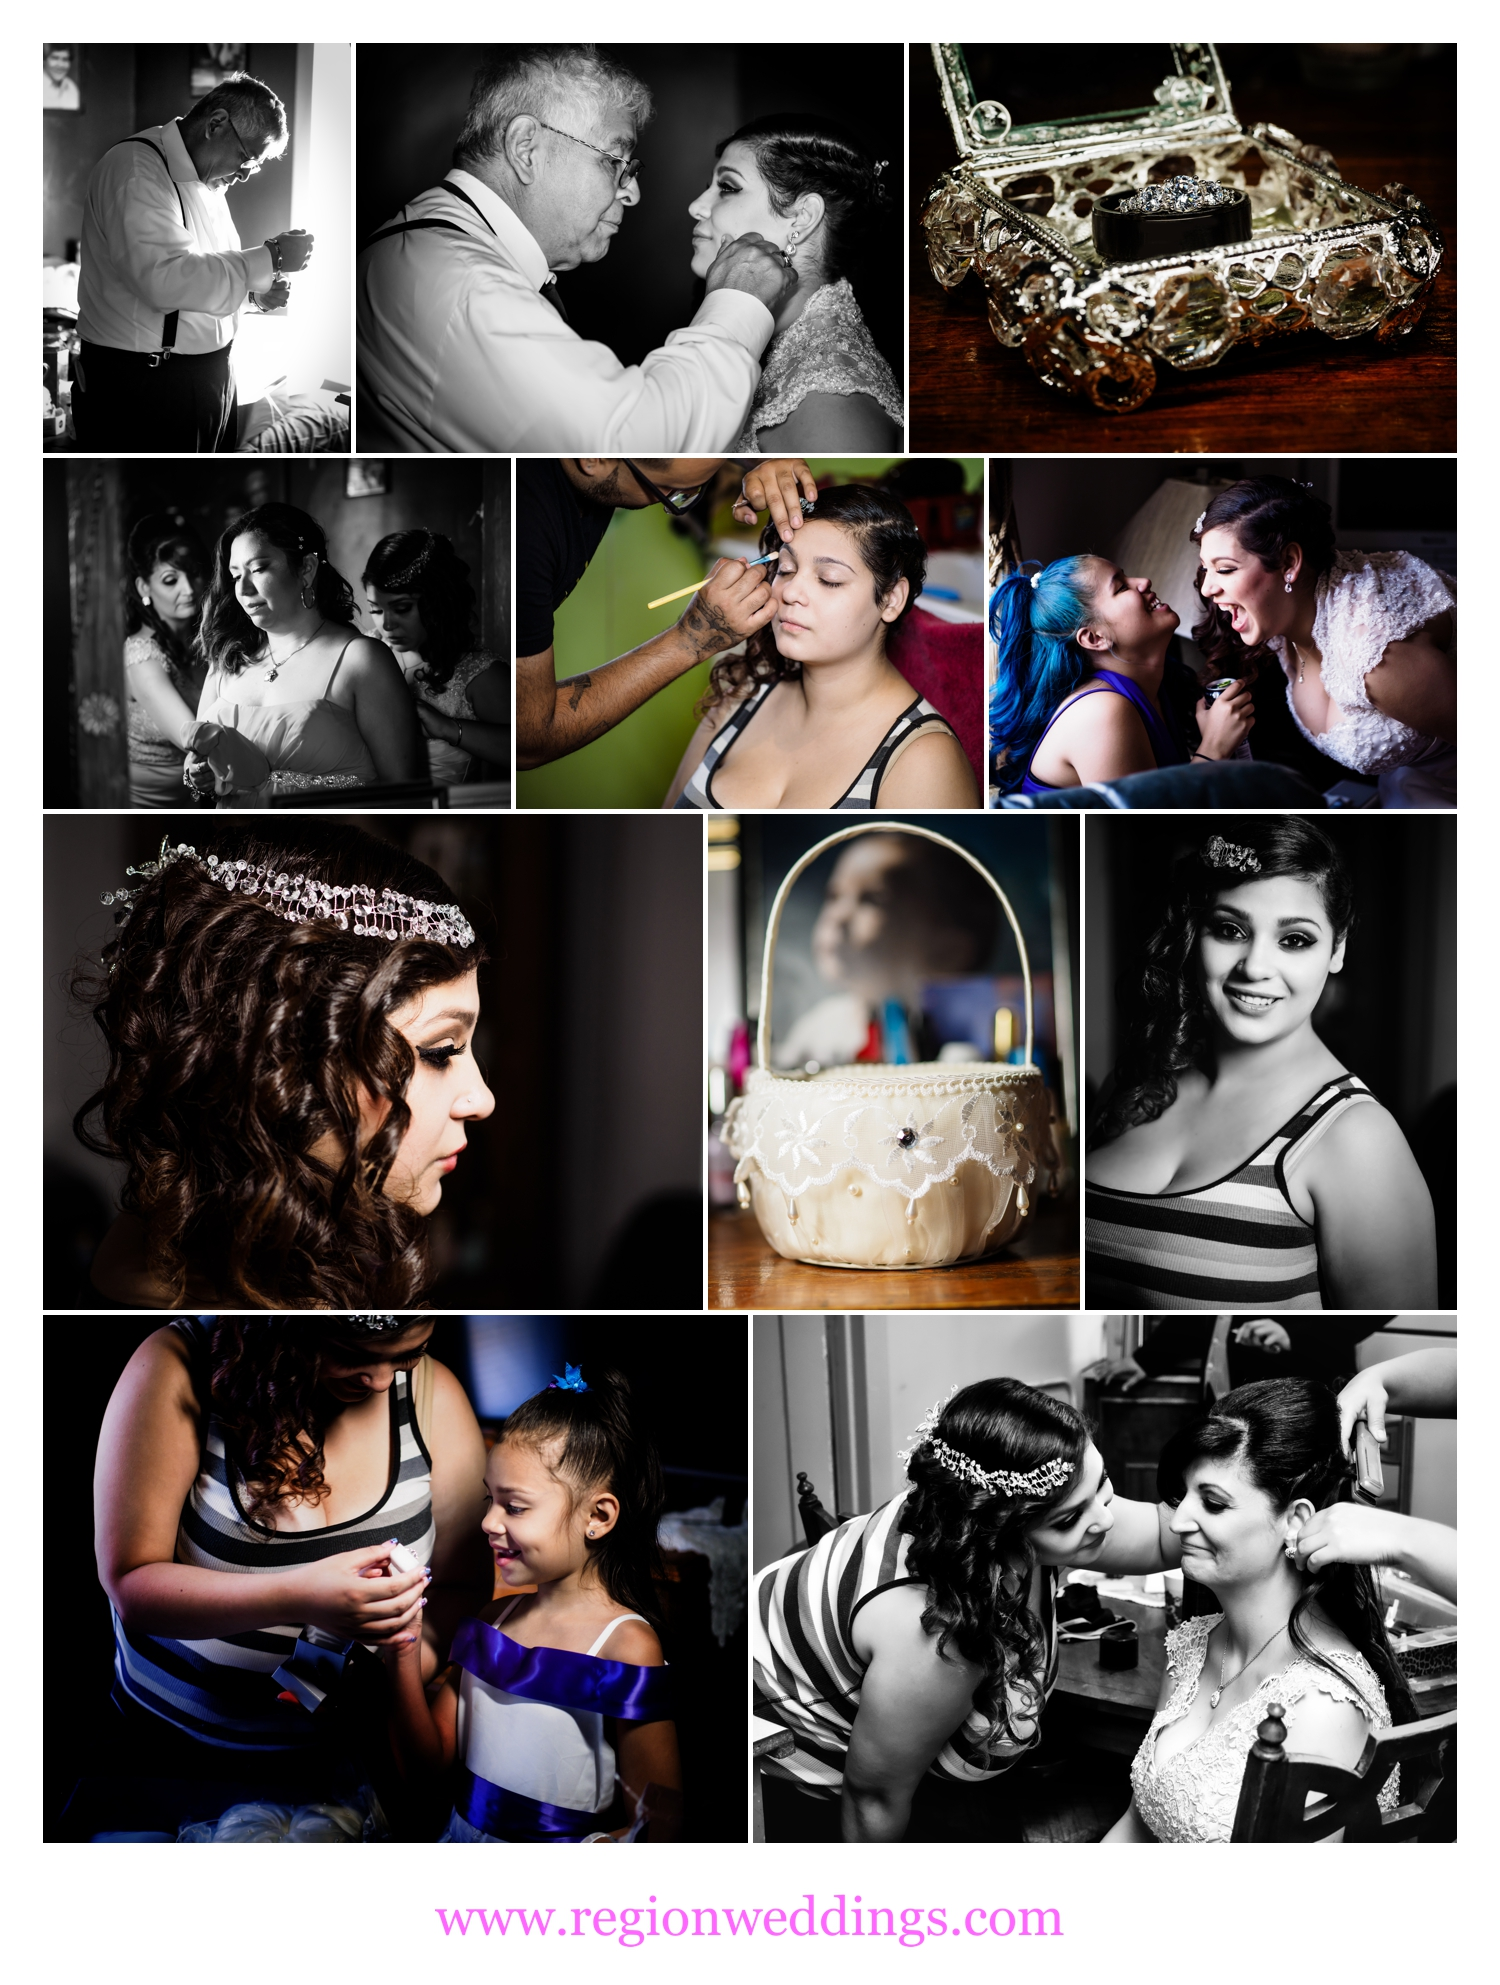 The bride gets ready for her big day surrounded by family.